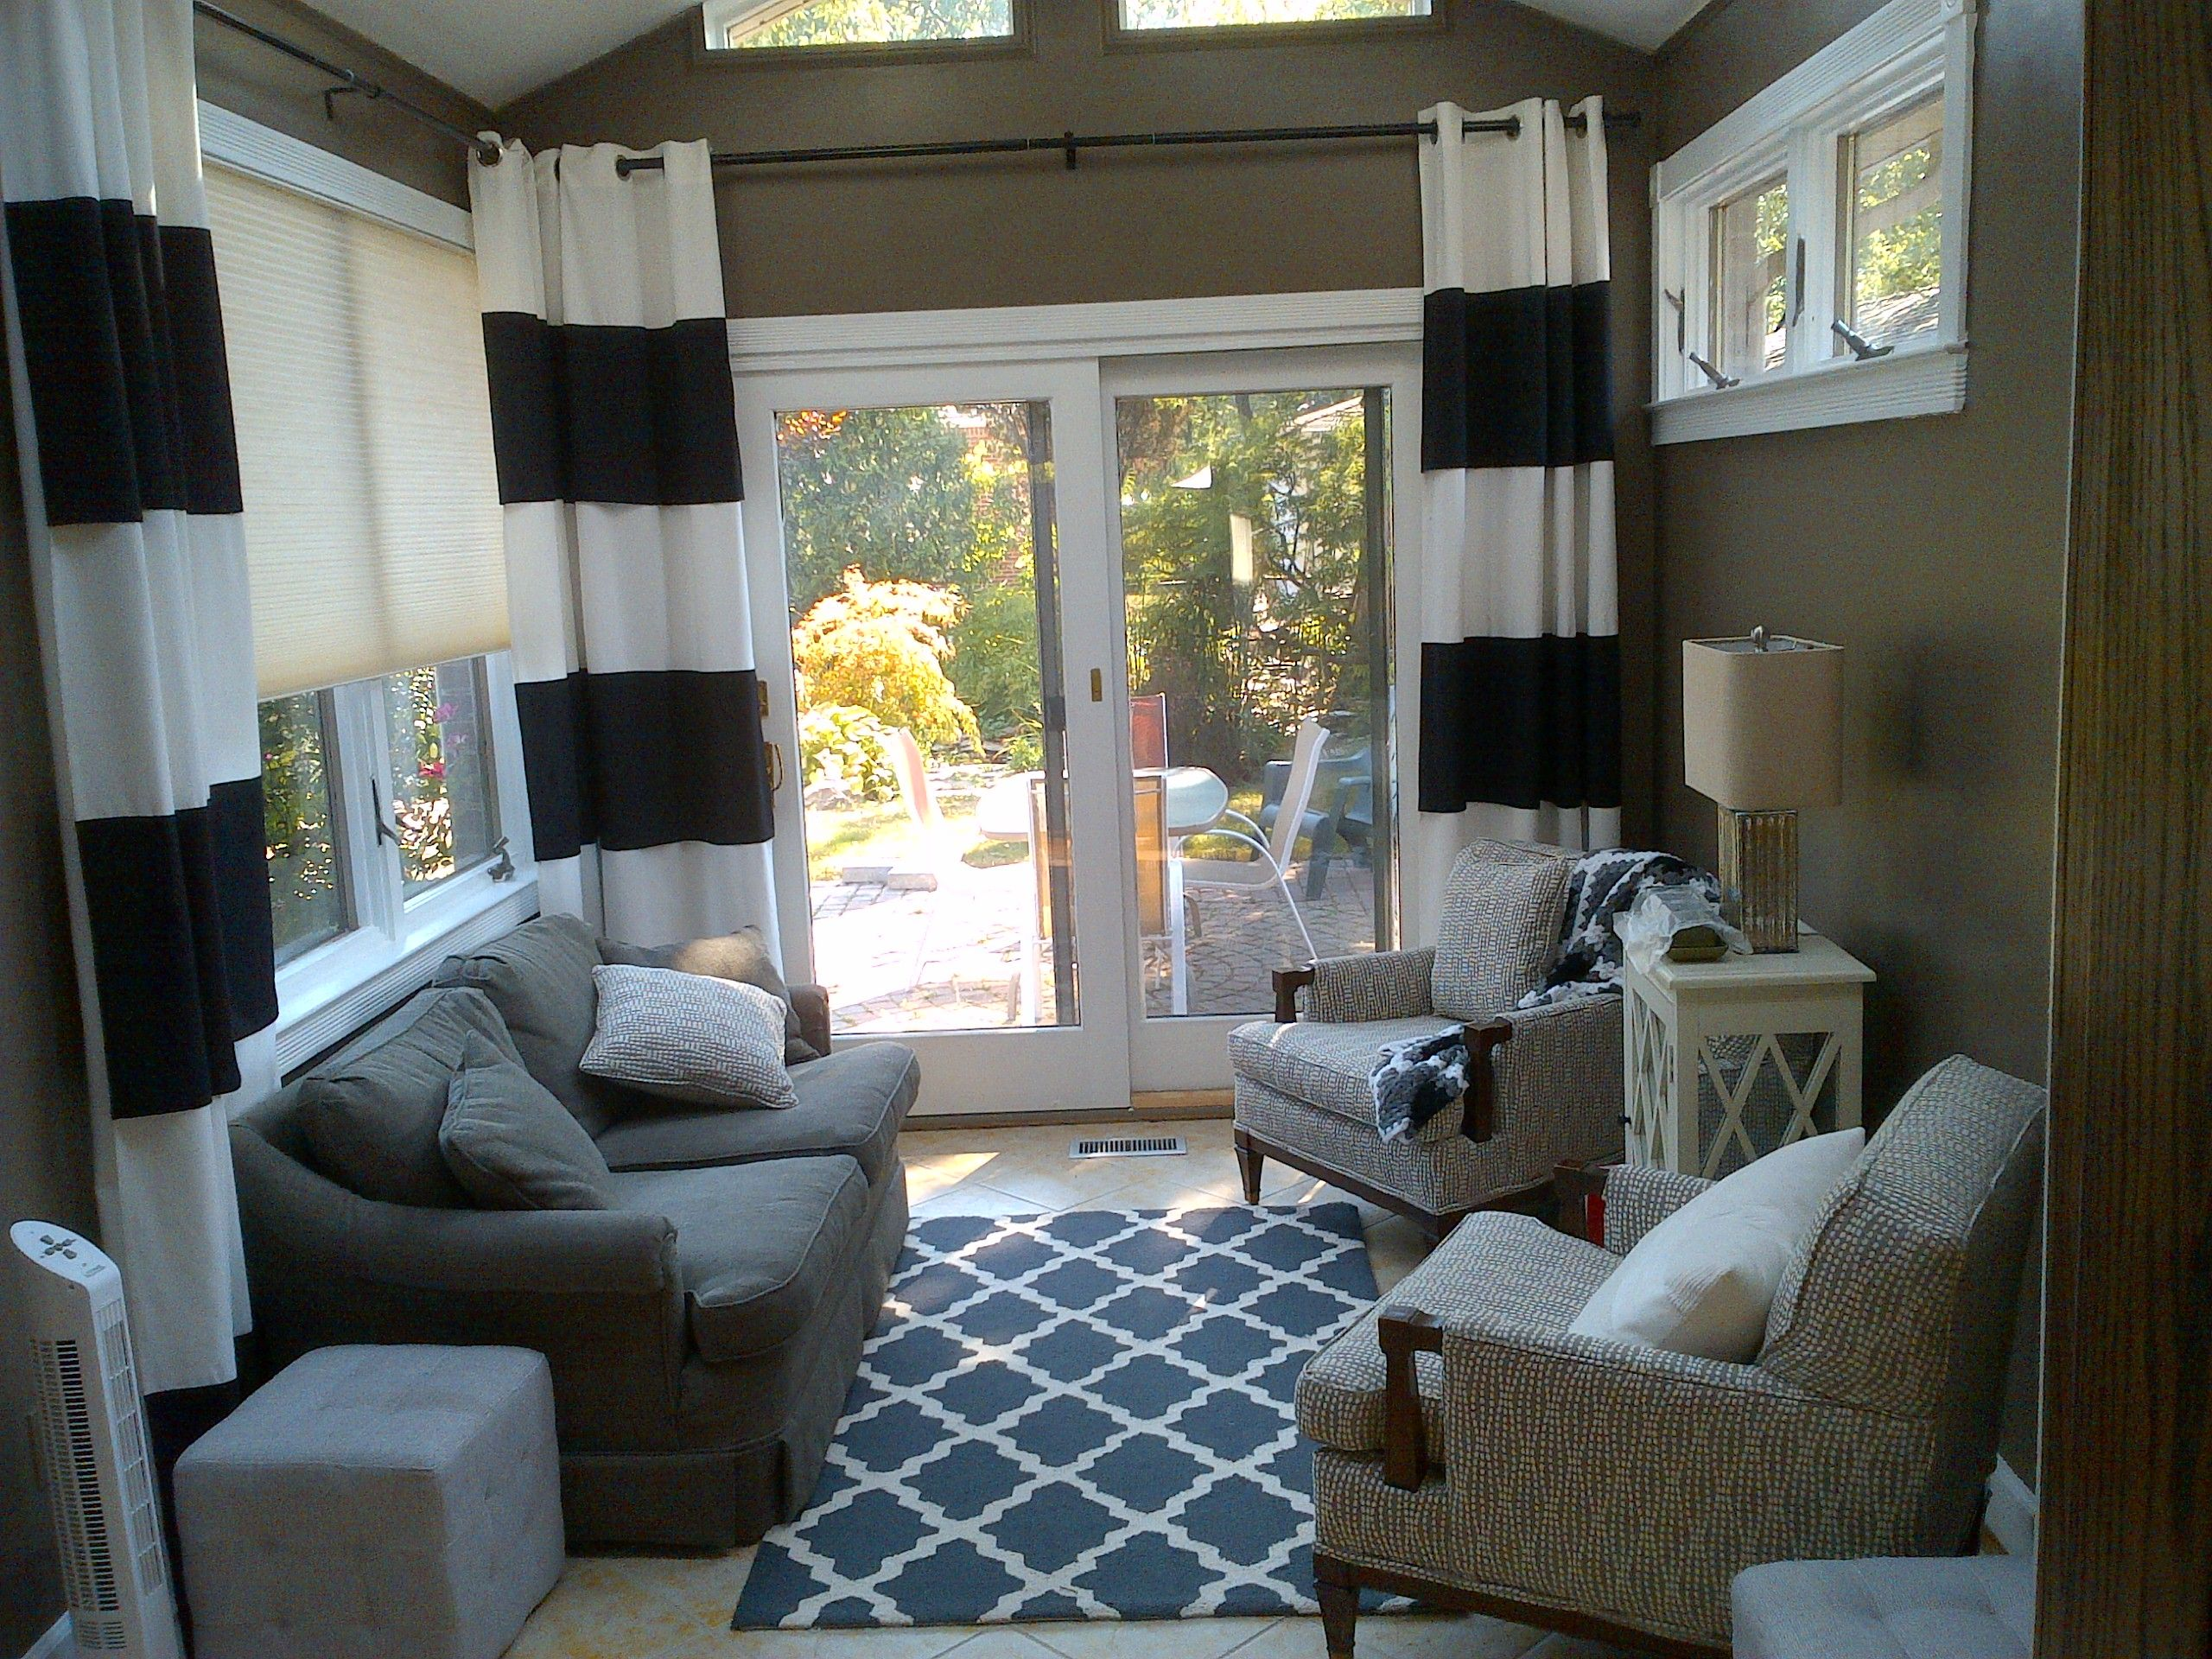 sunroomcurtain ideas  Sunroom furniture, Sunroom decorating